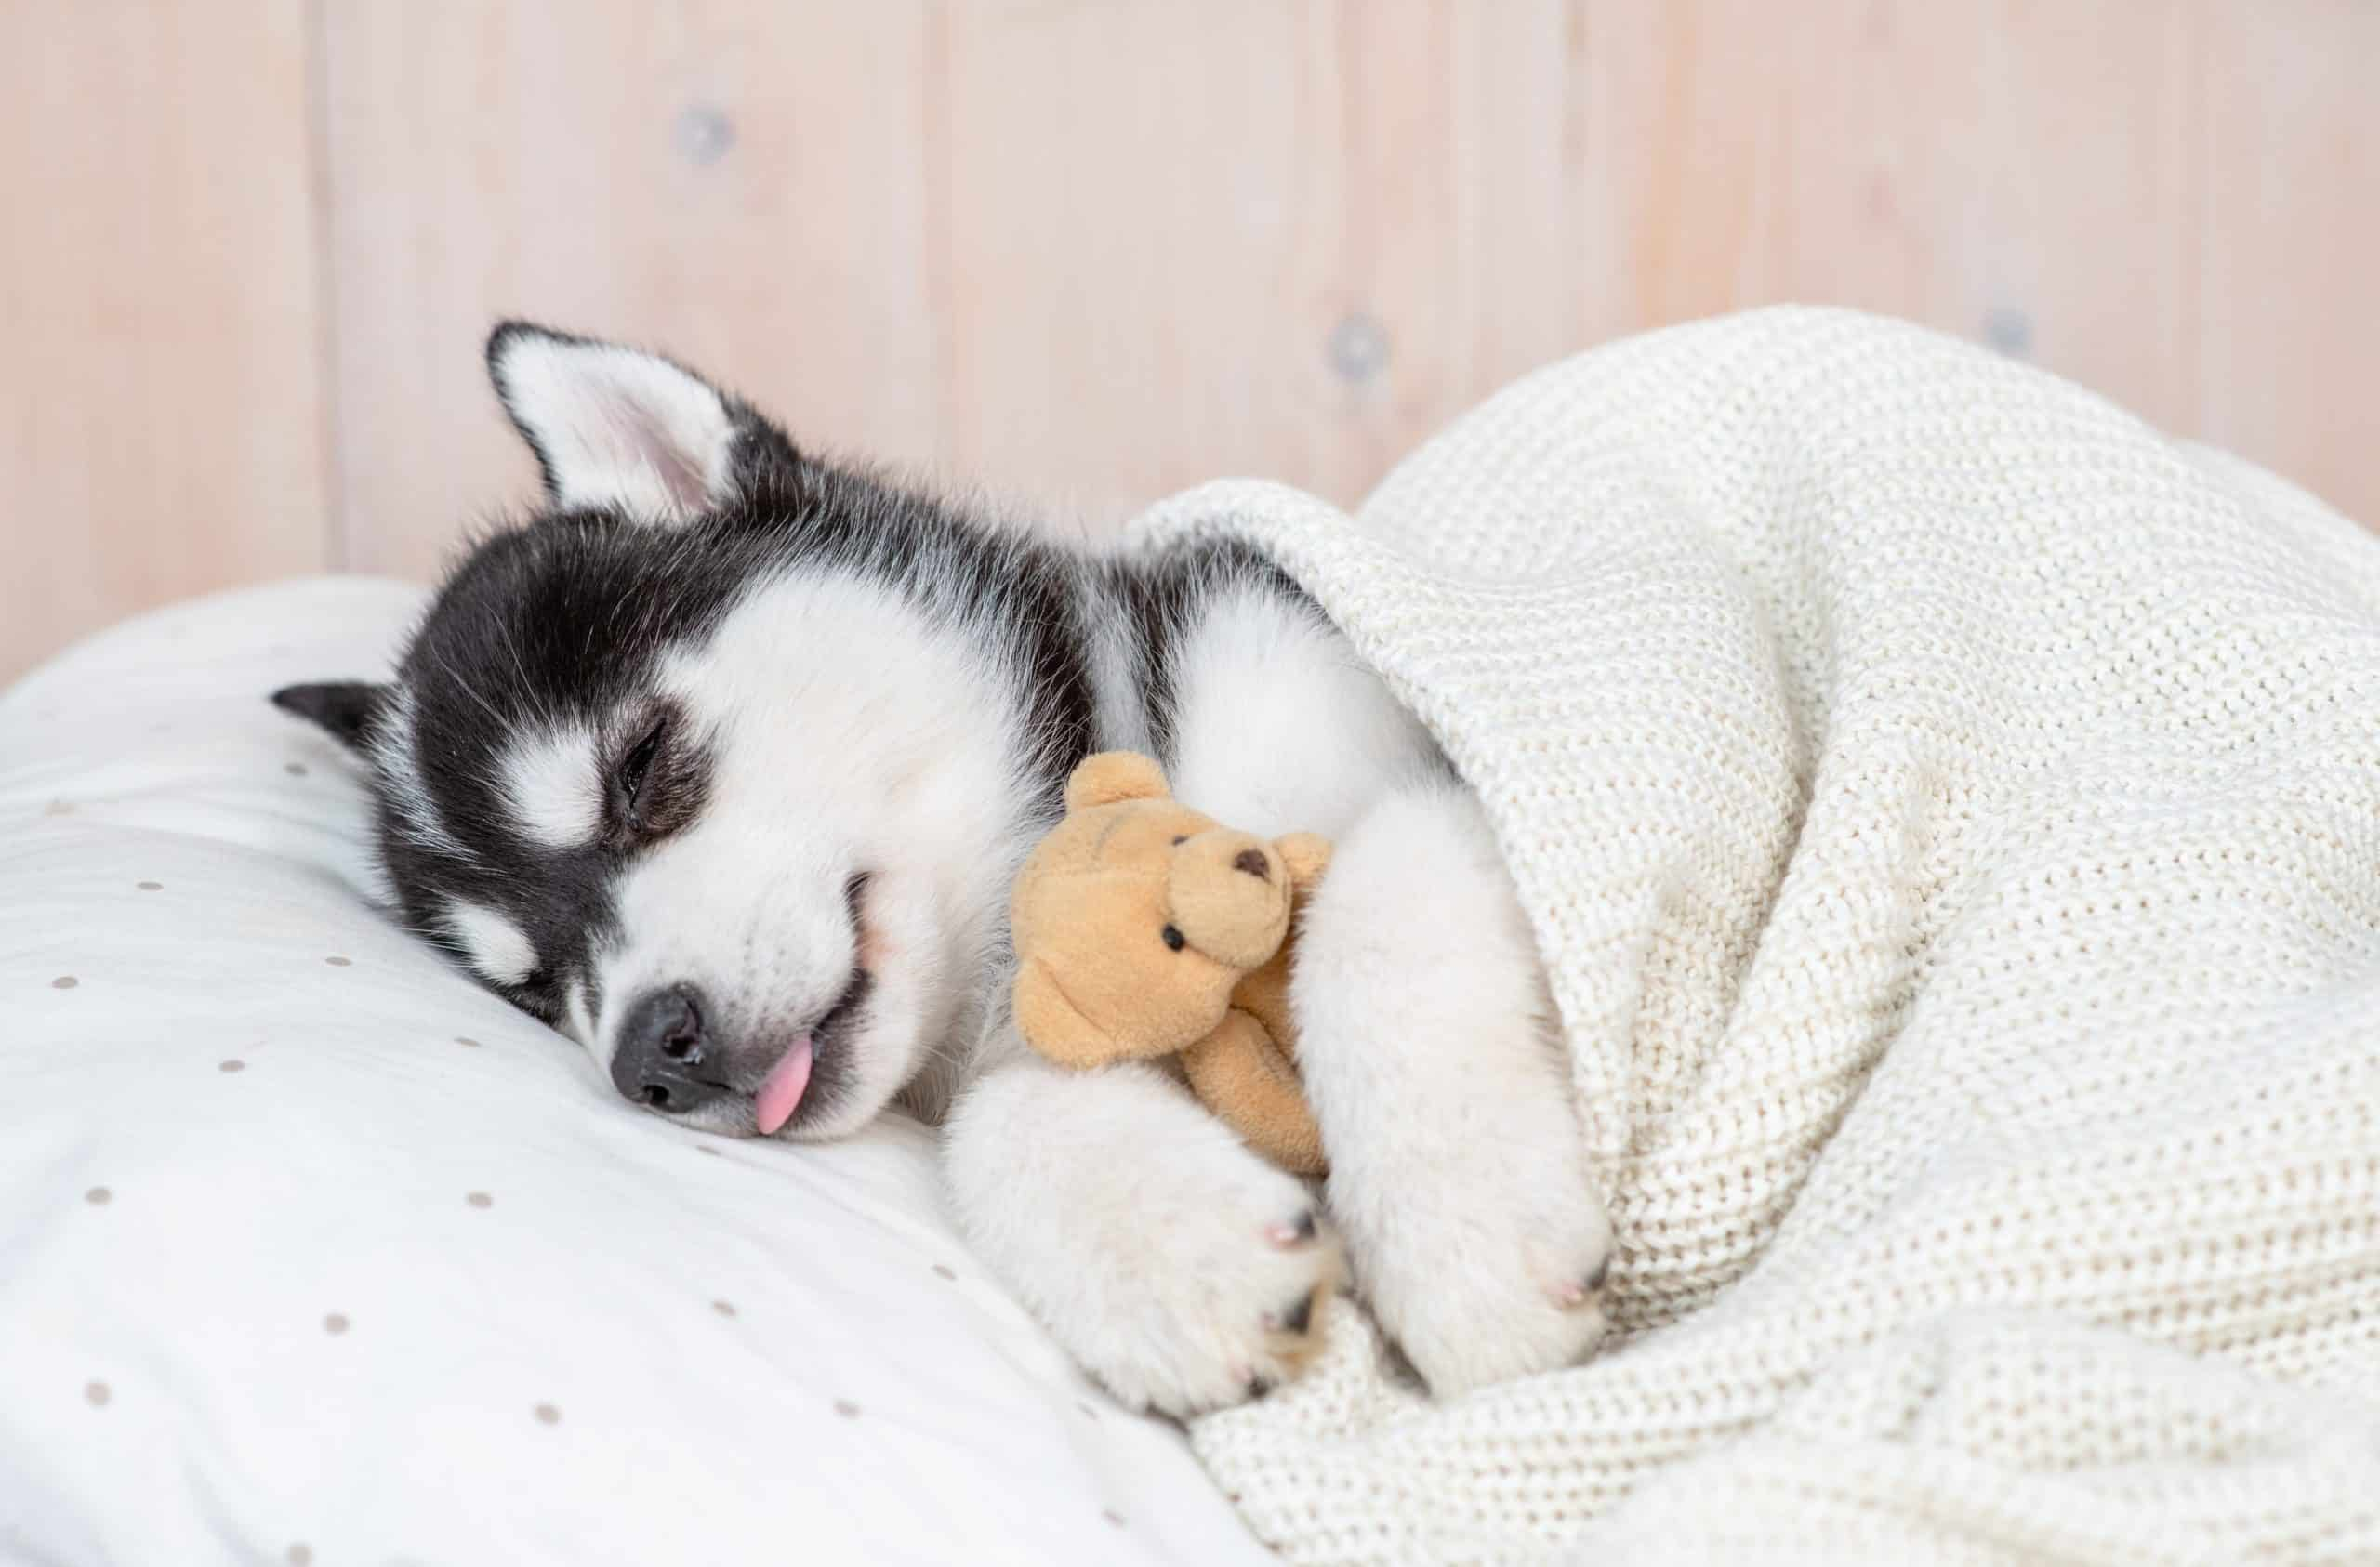 Husky puppy snuggles with a toy bear. Using a sleep schedule will help your puppy. The routine will make potty training easier and help your puppy adjust to a new home.